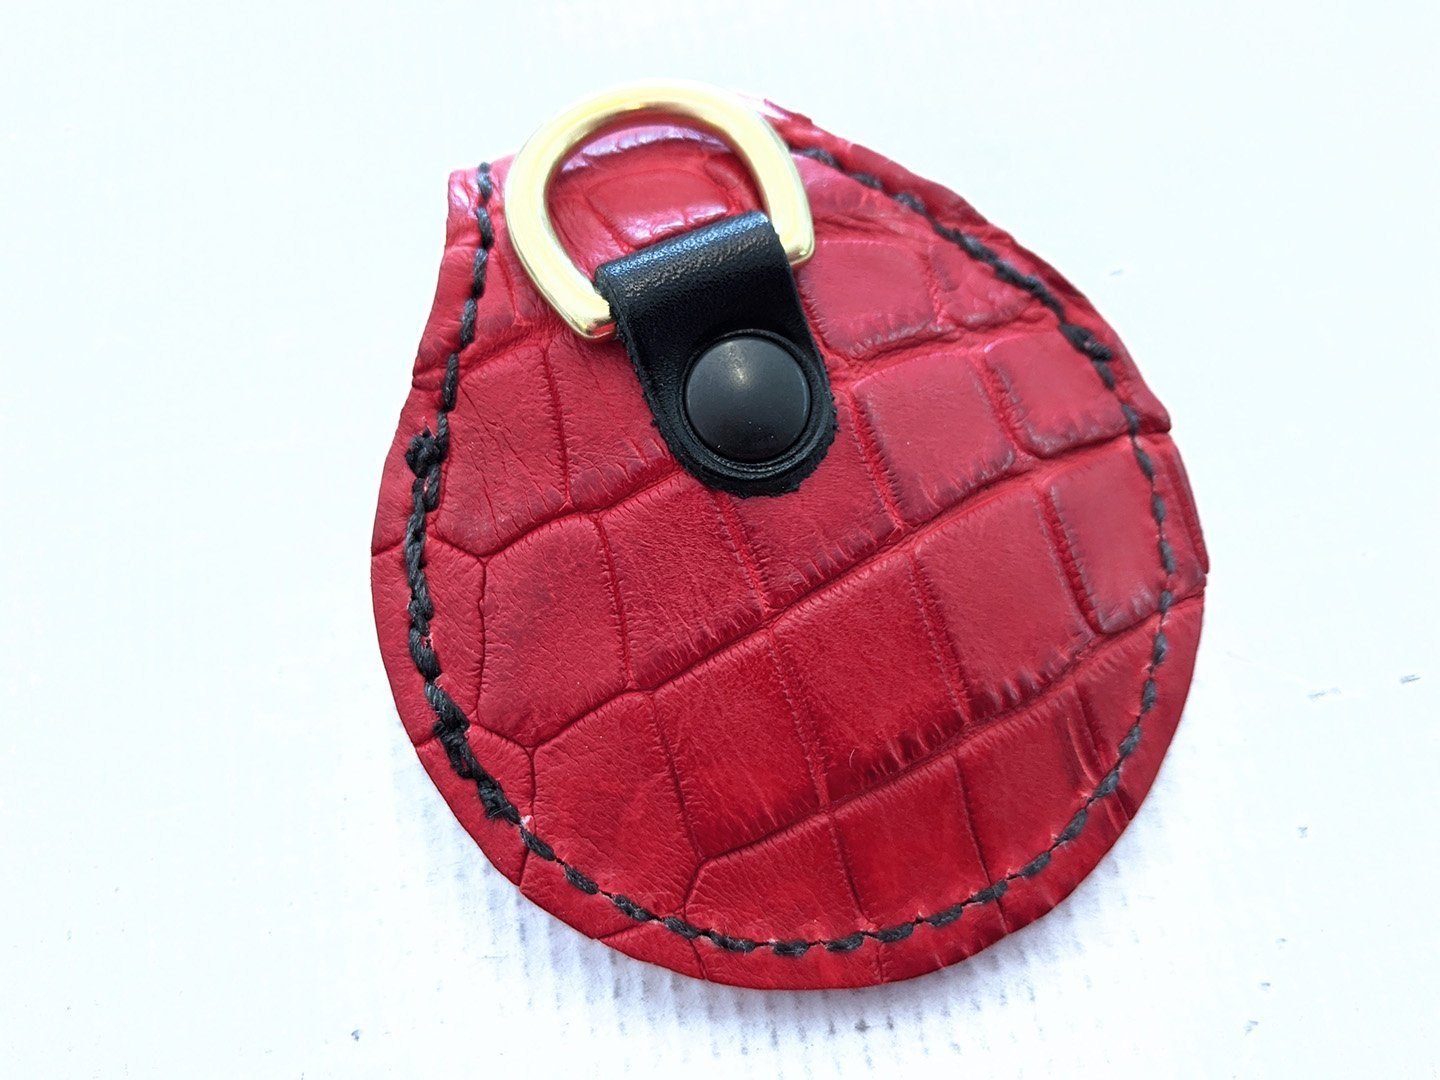 Harley-Davidson Remote Alarm Key Fob - Red Alligator - Anvil Customs